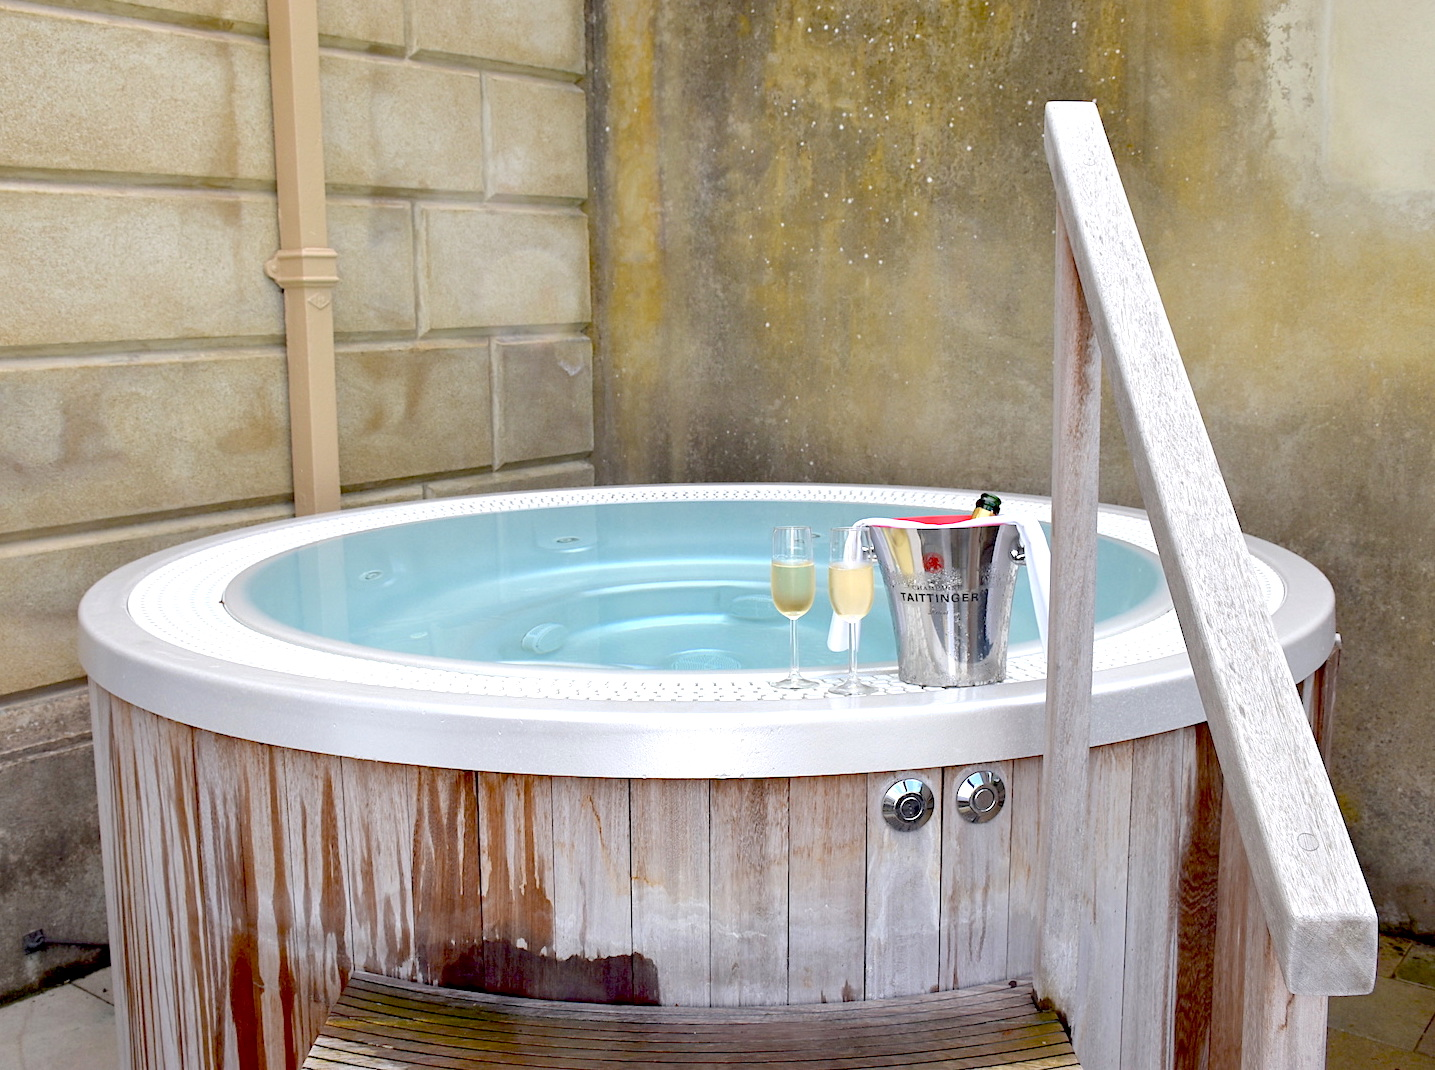 Cliveden House Hotel Review: 5 Star Country House Luxury Just One ...